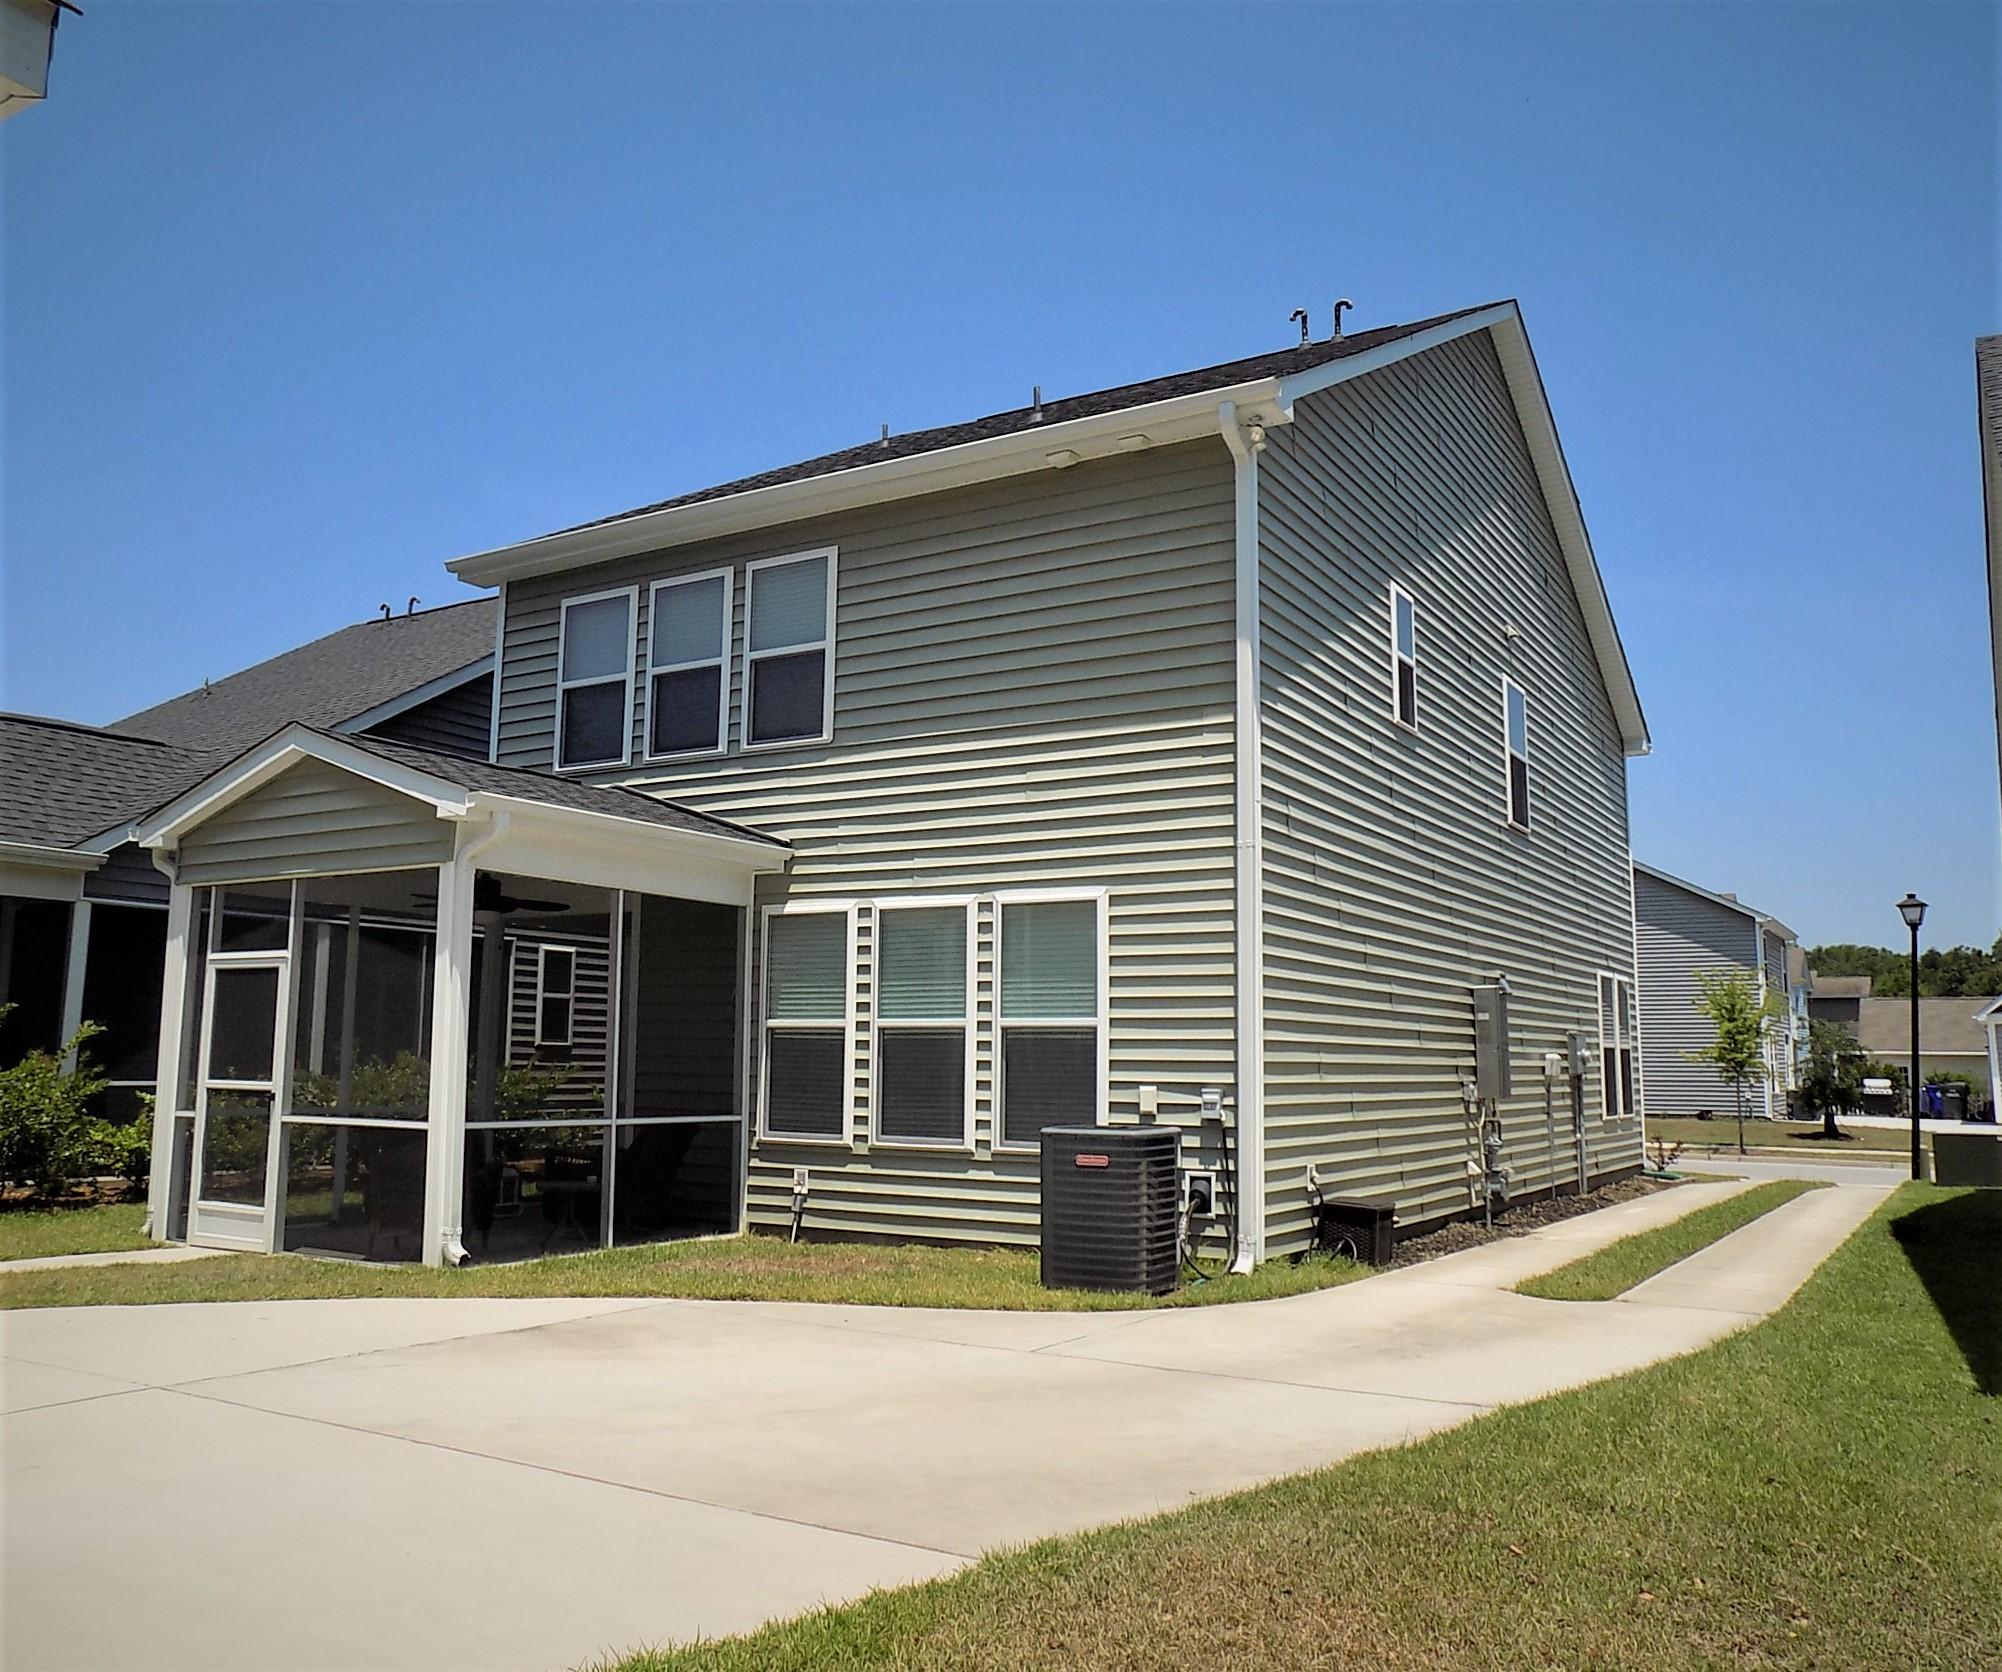 Boltons Landing Homes For Sale - 3169 Moonlight, Charleston, SC - 13